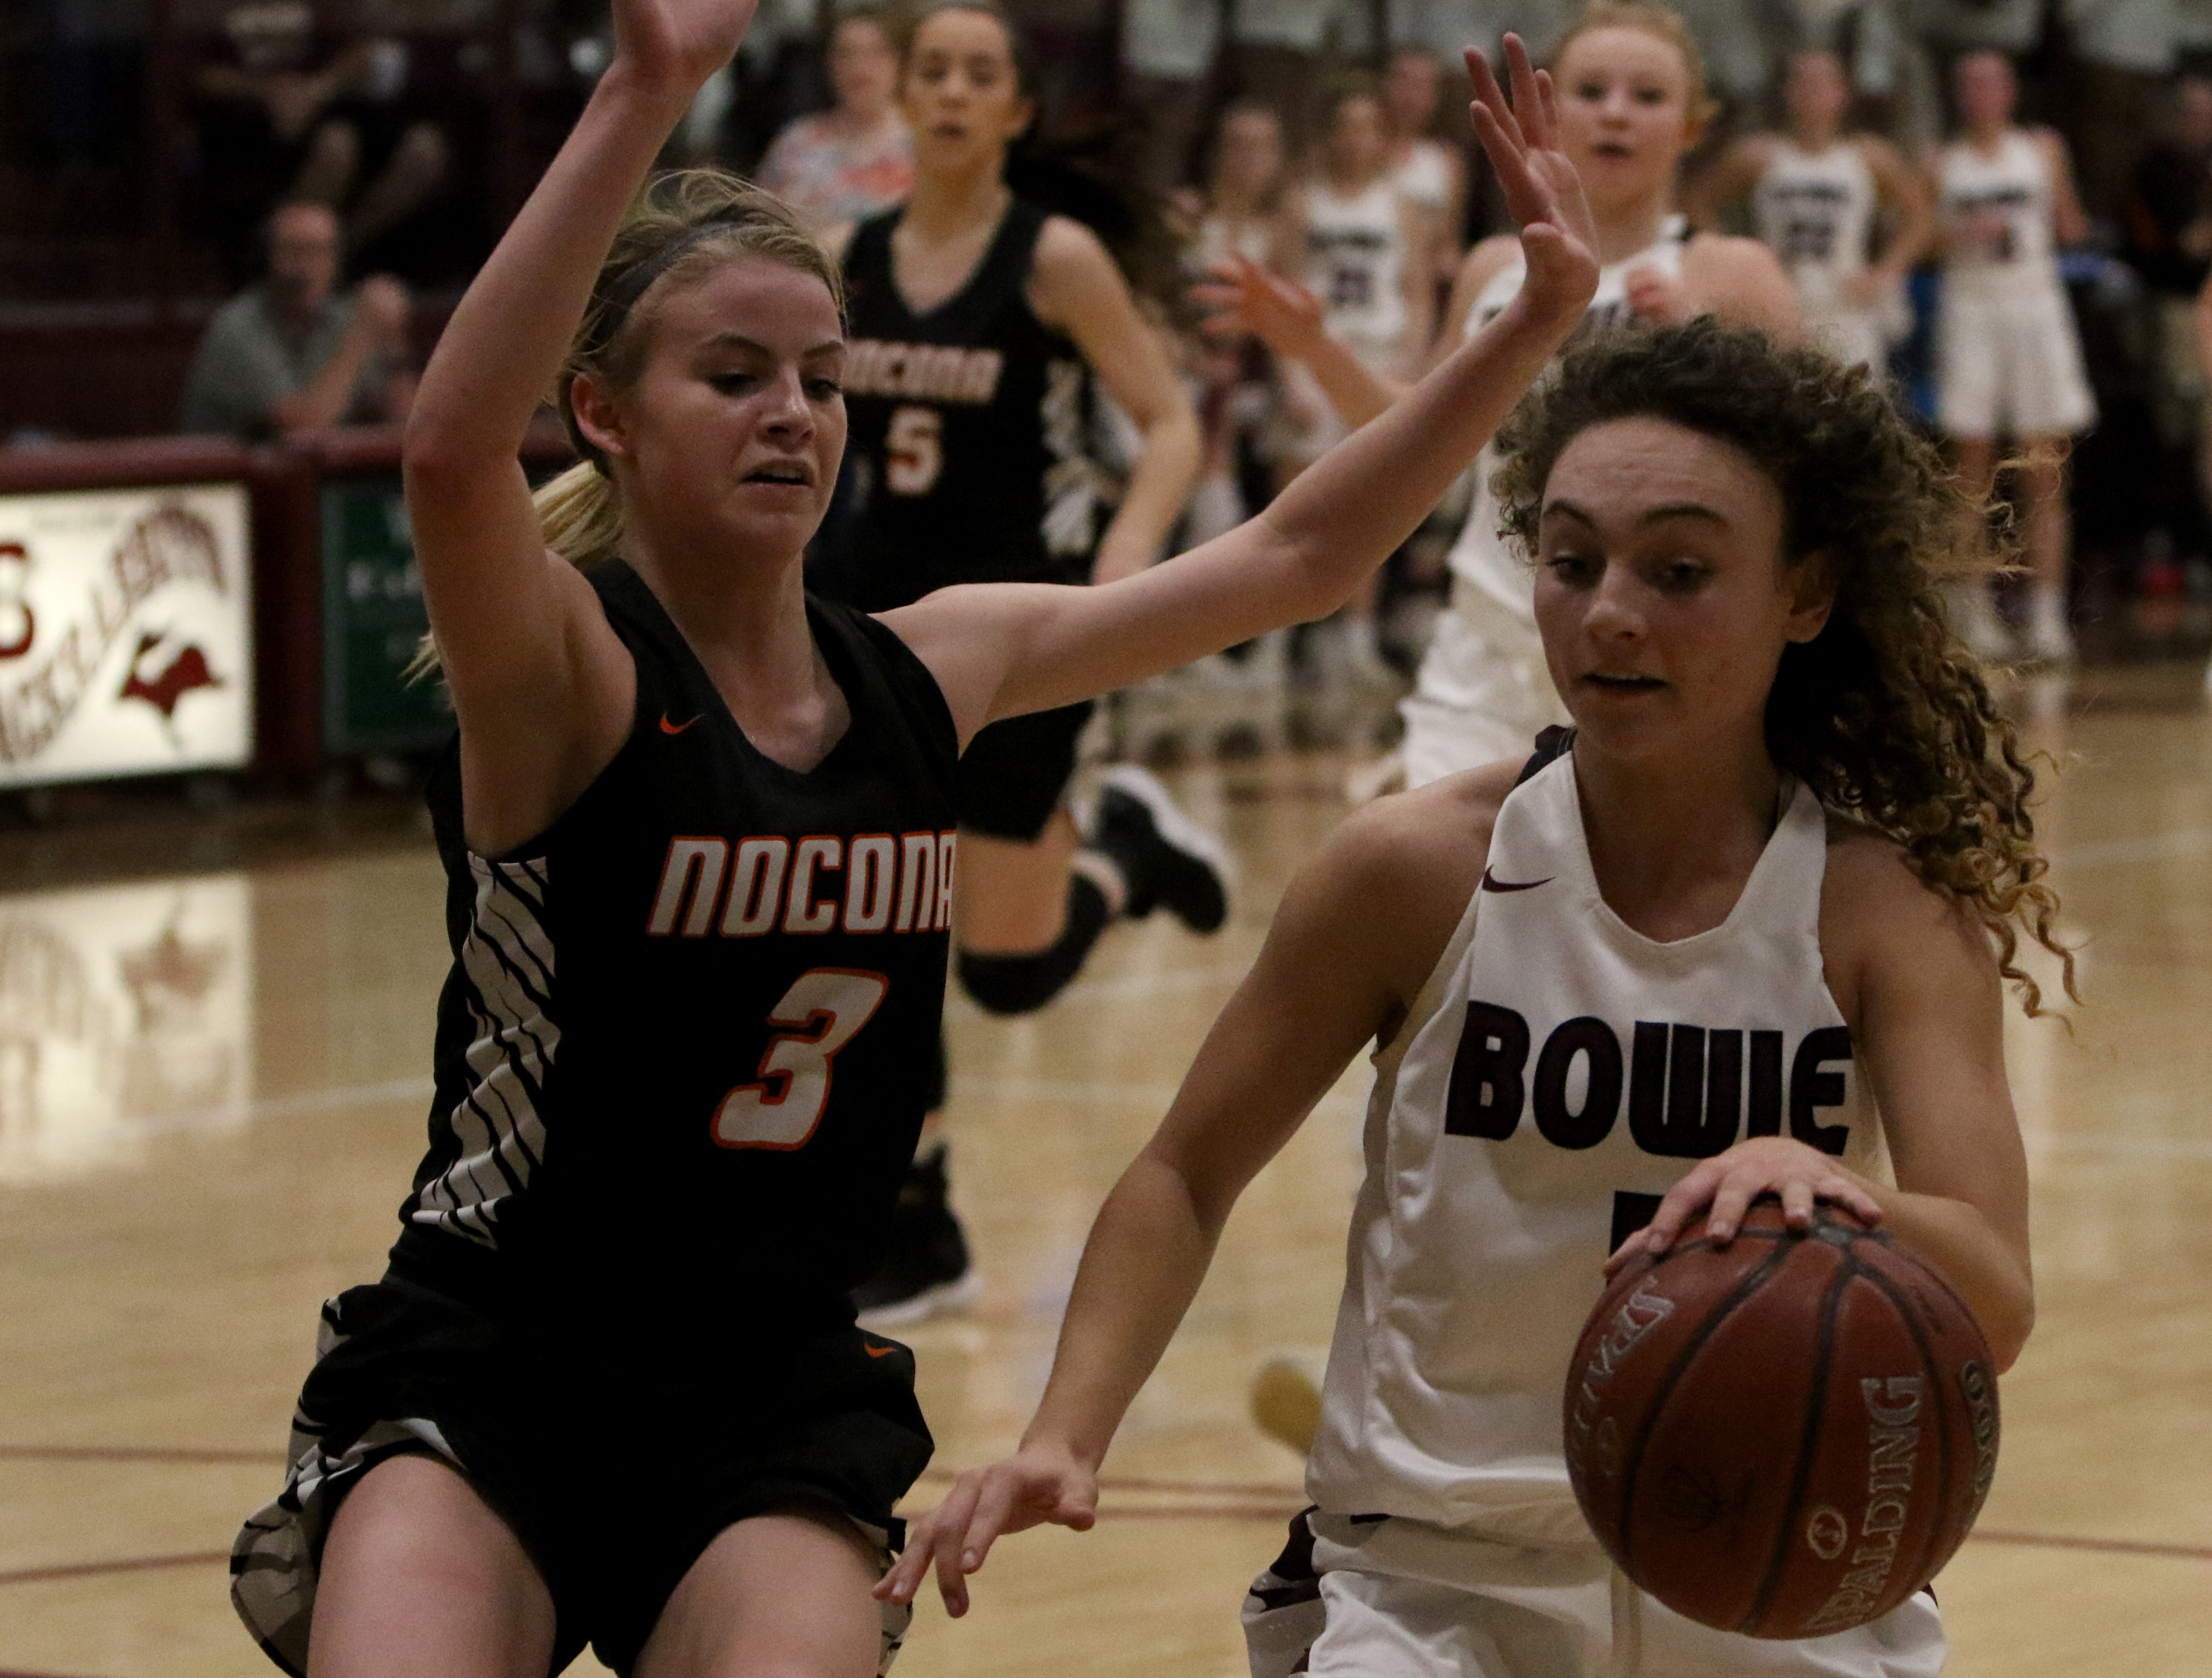 Bowie's Brysen Richey changes direction by Nocona's Chloe Daughtry Tuesday, Feb. 5, 2019, in Bowie. Nocona defeated Bowie 38-34.